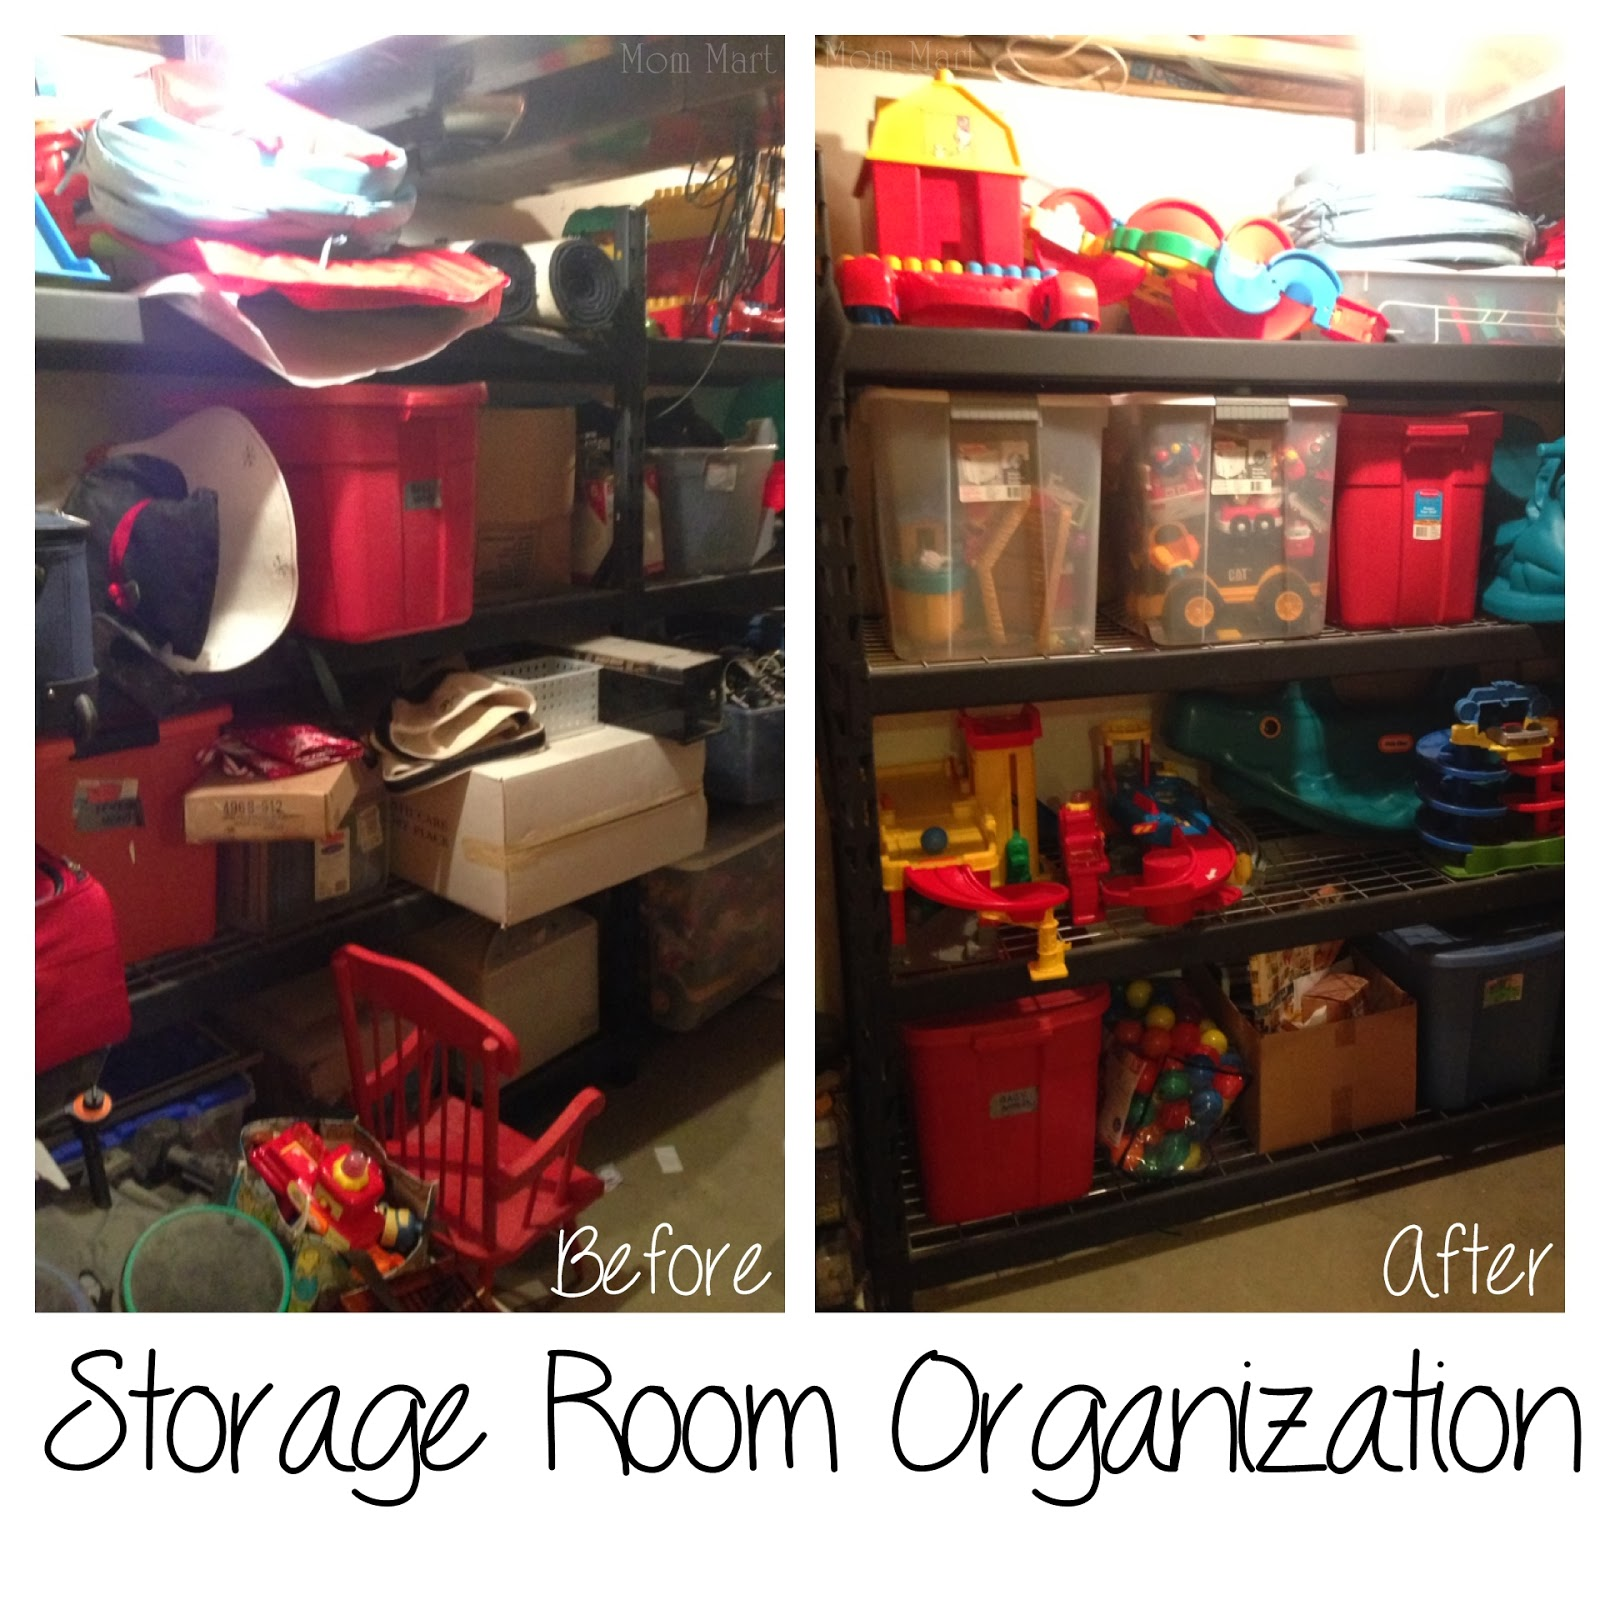 Storage Room Organization for Toy Rotation